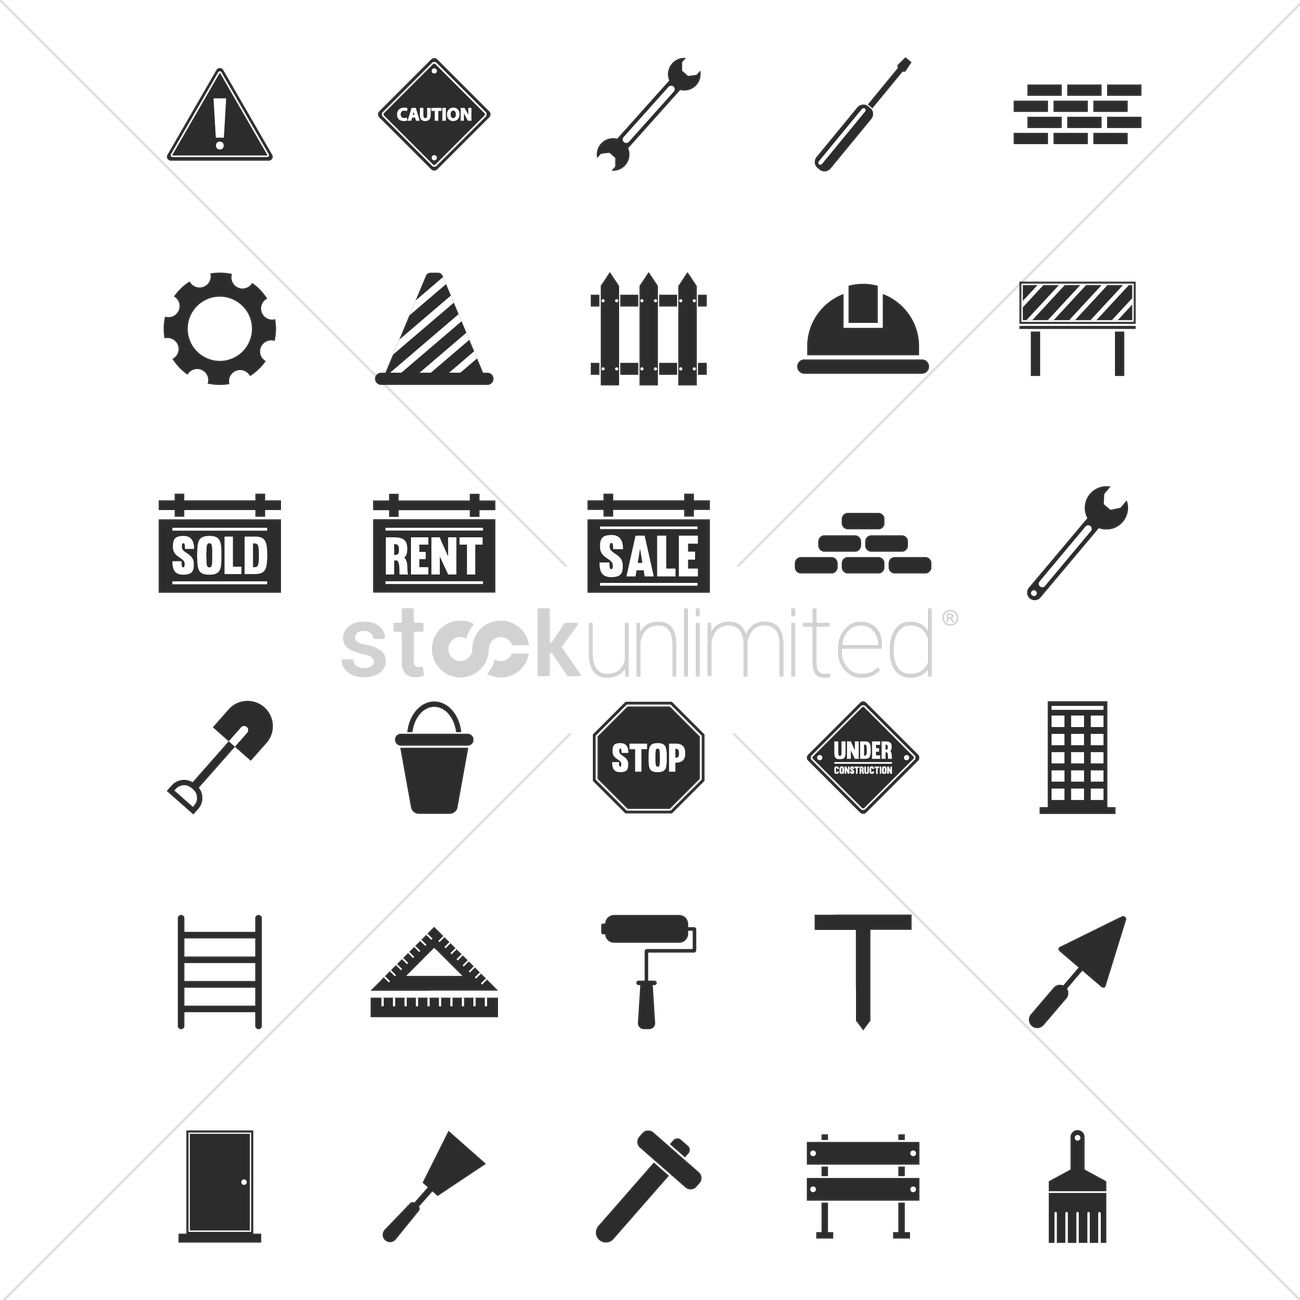 Set of construction icons vector image 1545823 stockunlimited set of construction icons vector graphic buycottarizona Image collections